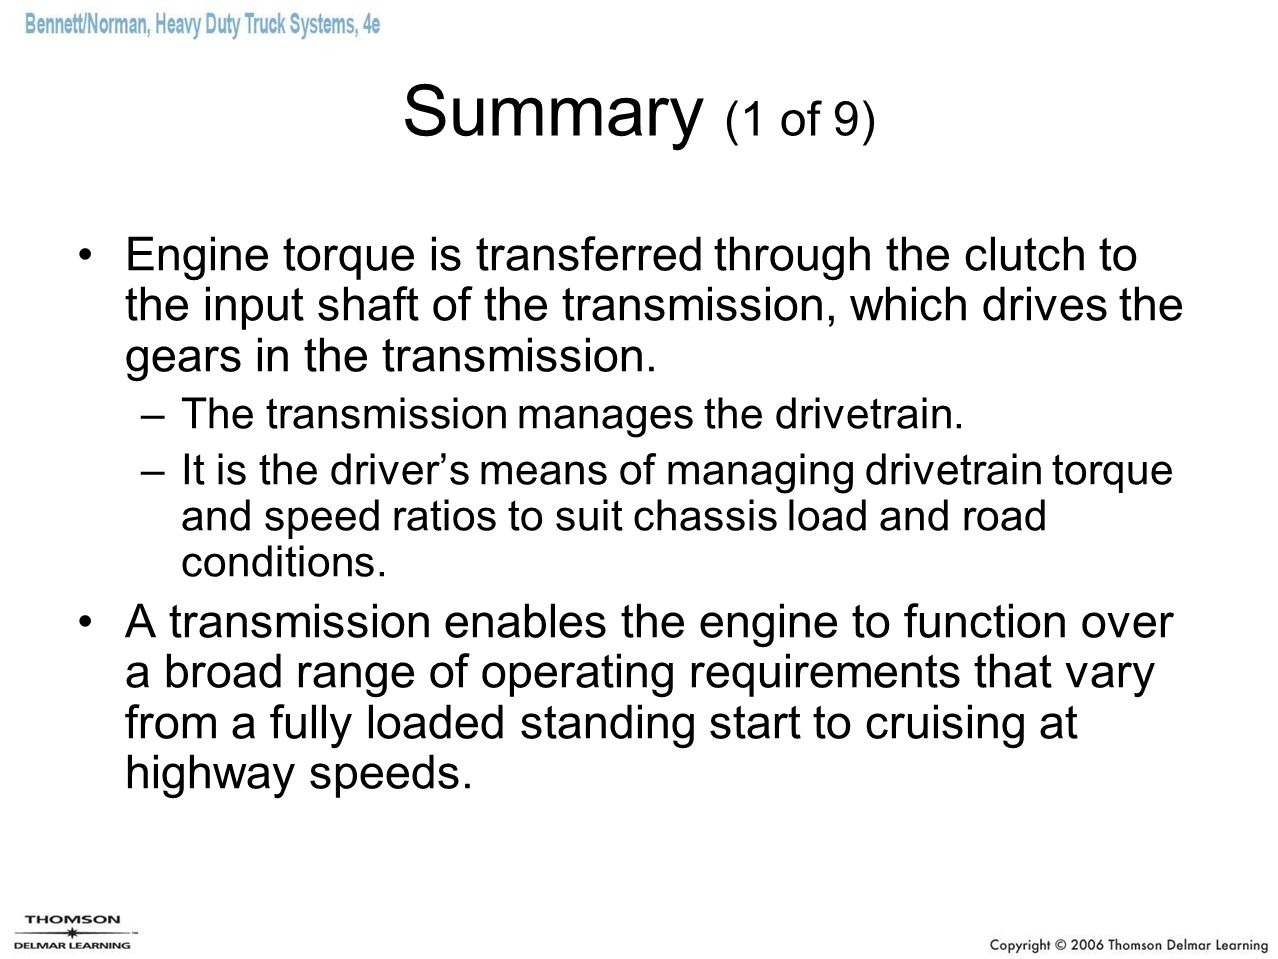 Summary (1 of 9) Engine torque is transferred through the clutch to the input shaft of the transmission, which drives the gears in the transmission.